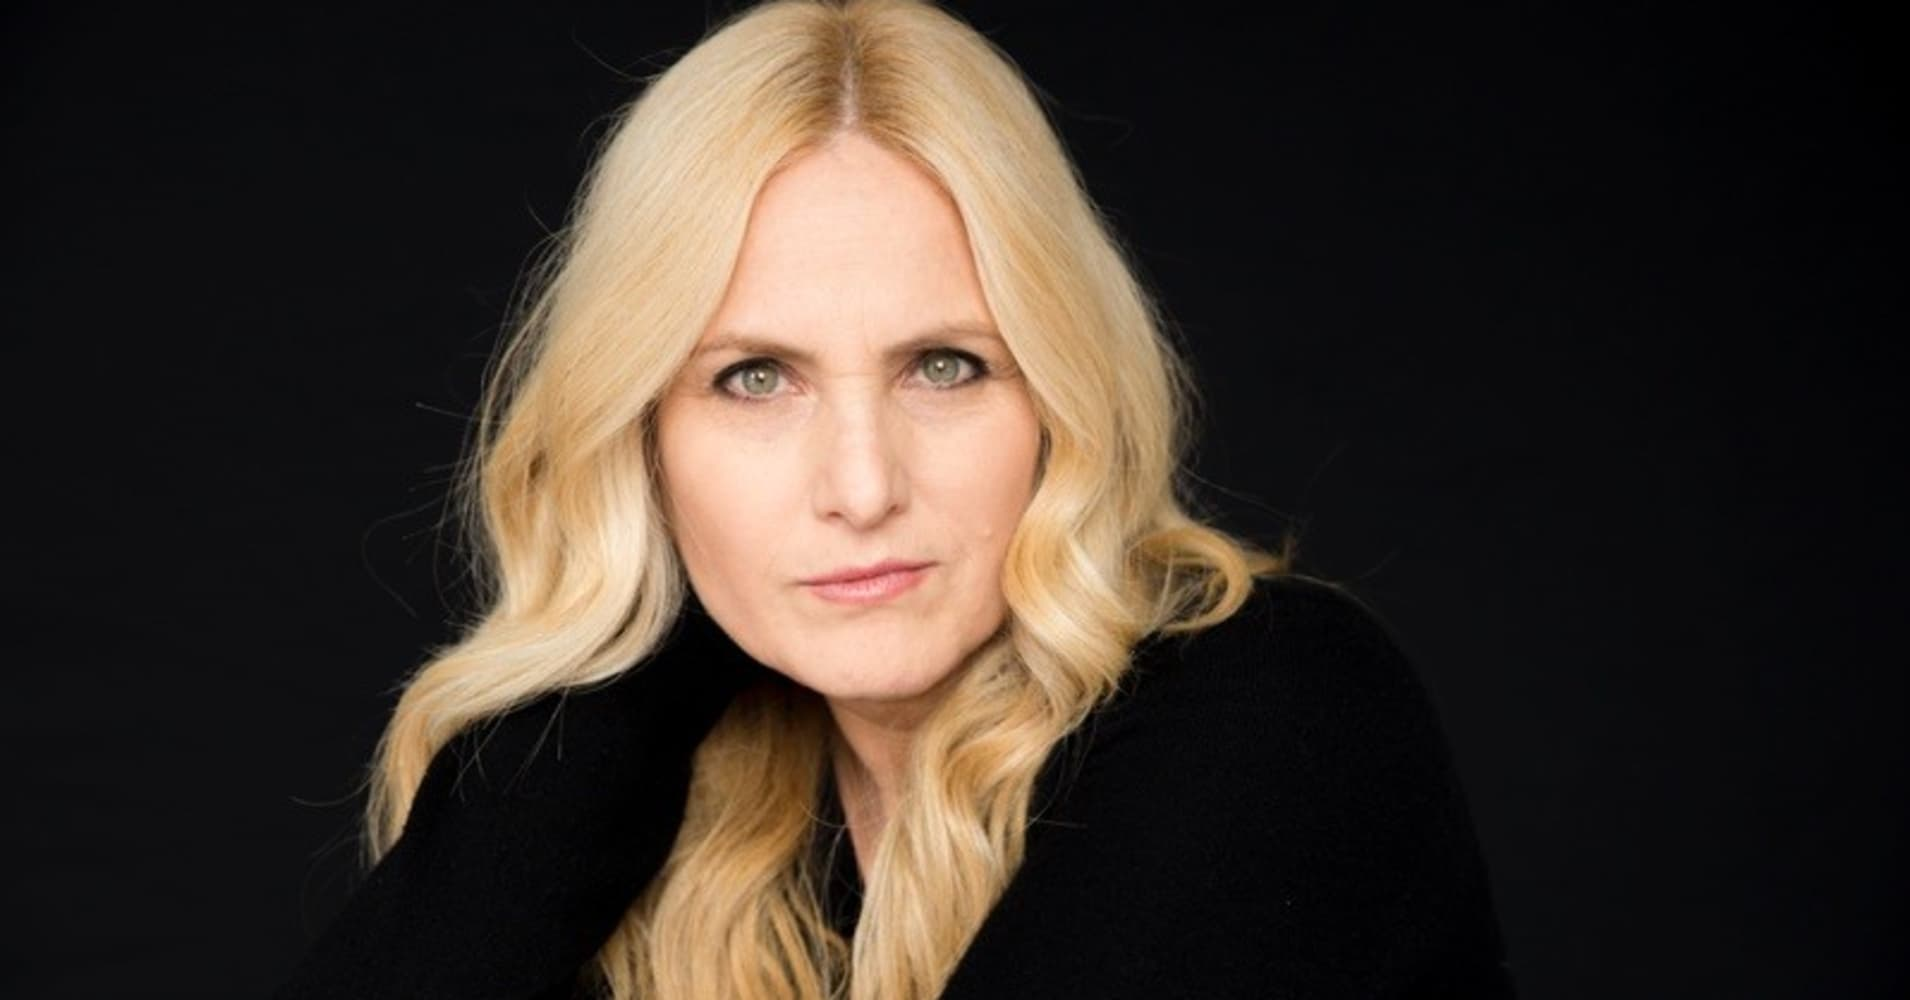 Executive leadership coach Lolly Daskal